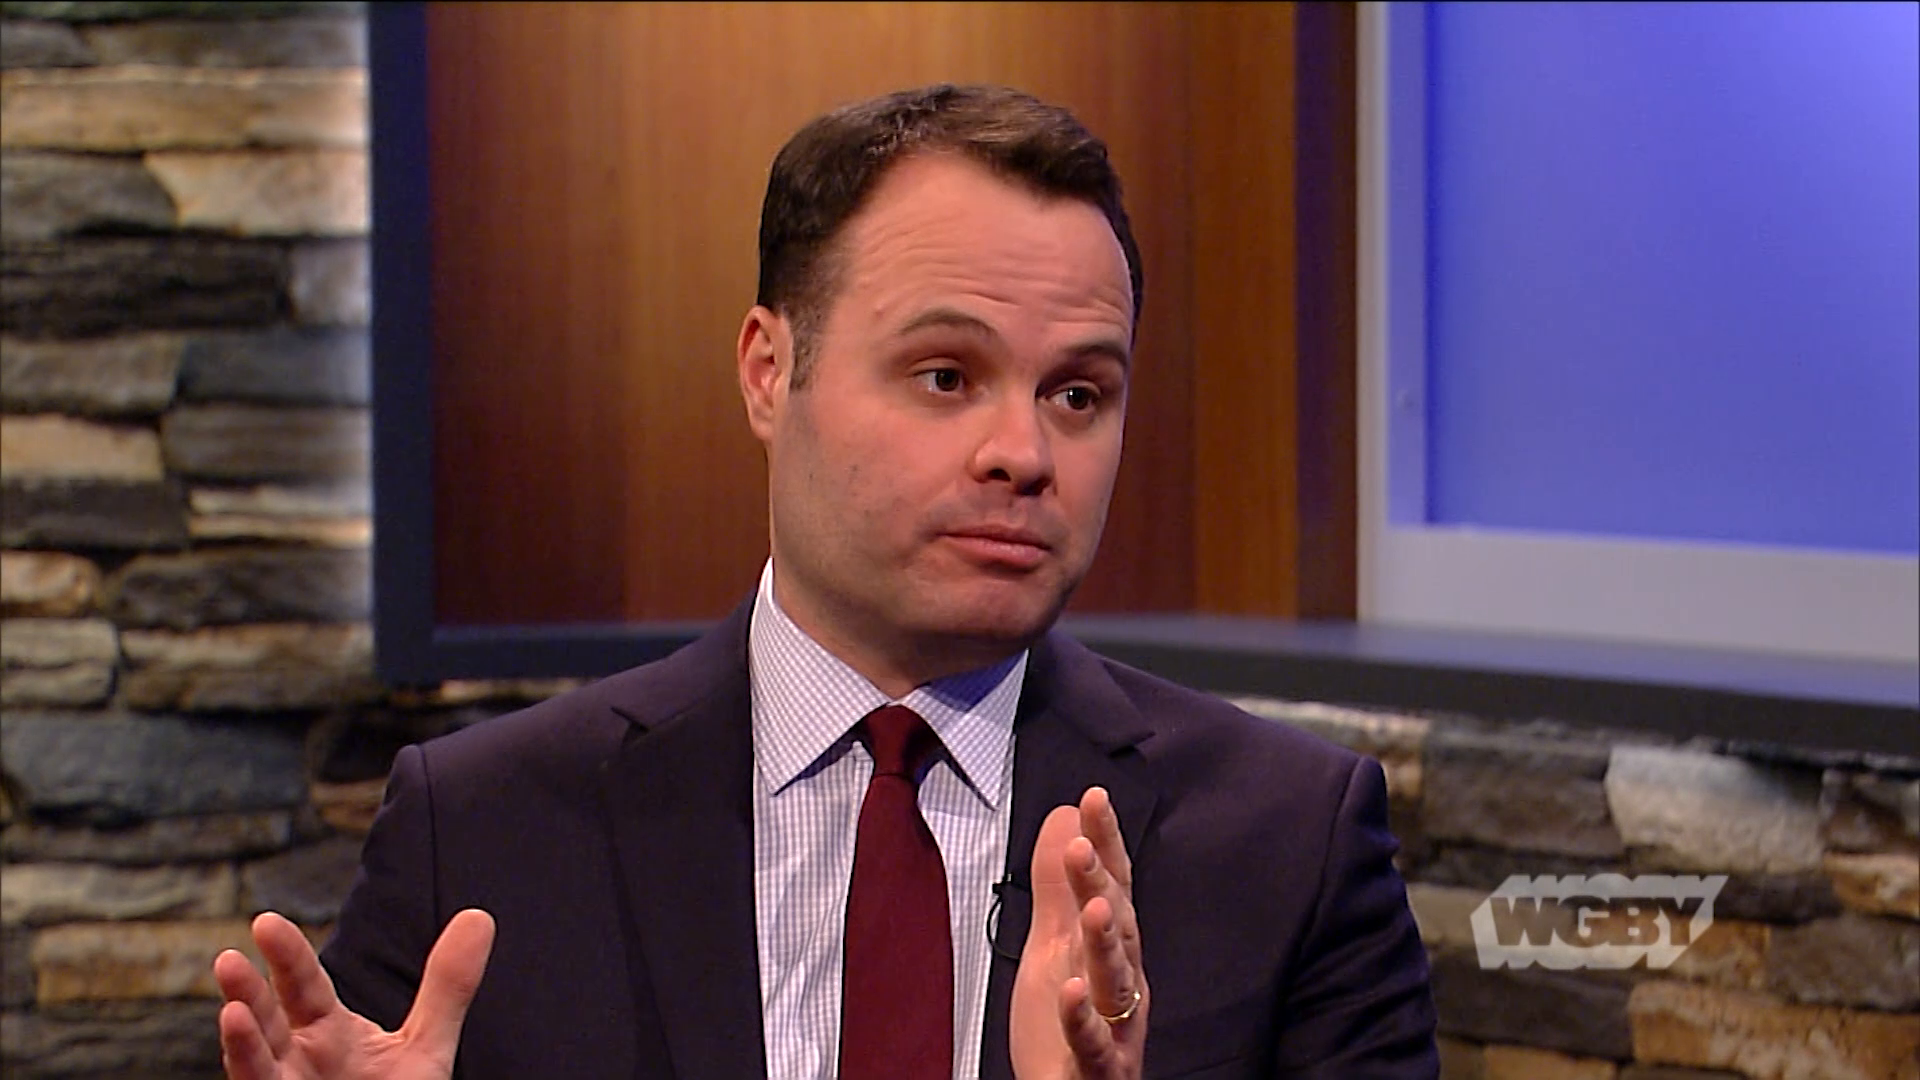 Sen. Eric Lesser talks about his experience traveling with super-commuters, who've started a western Mass-Boston commuter van to fill the transportation gap